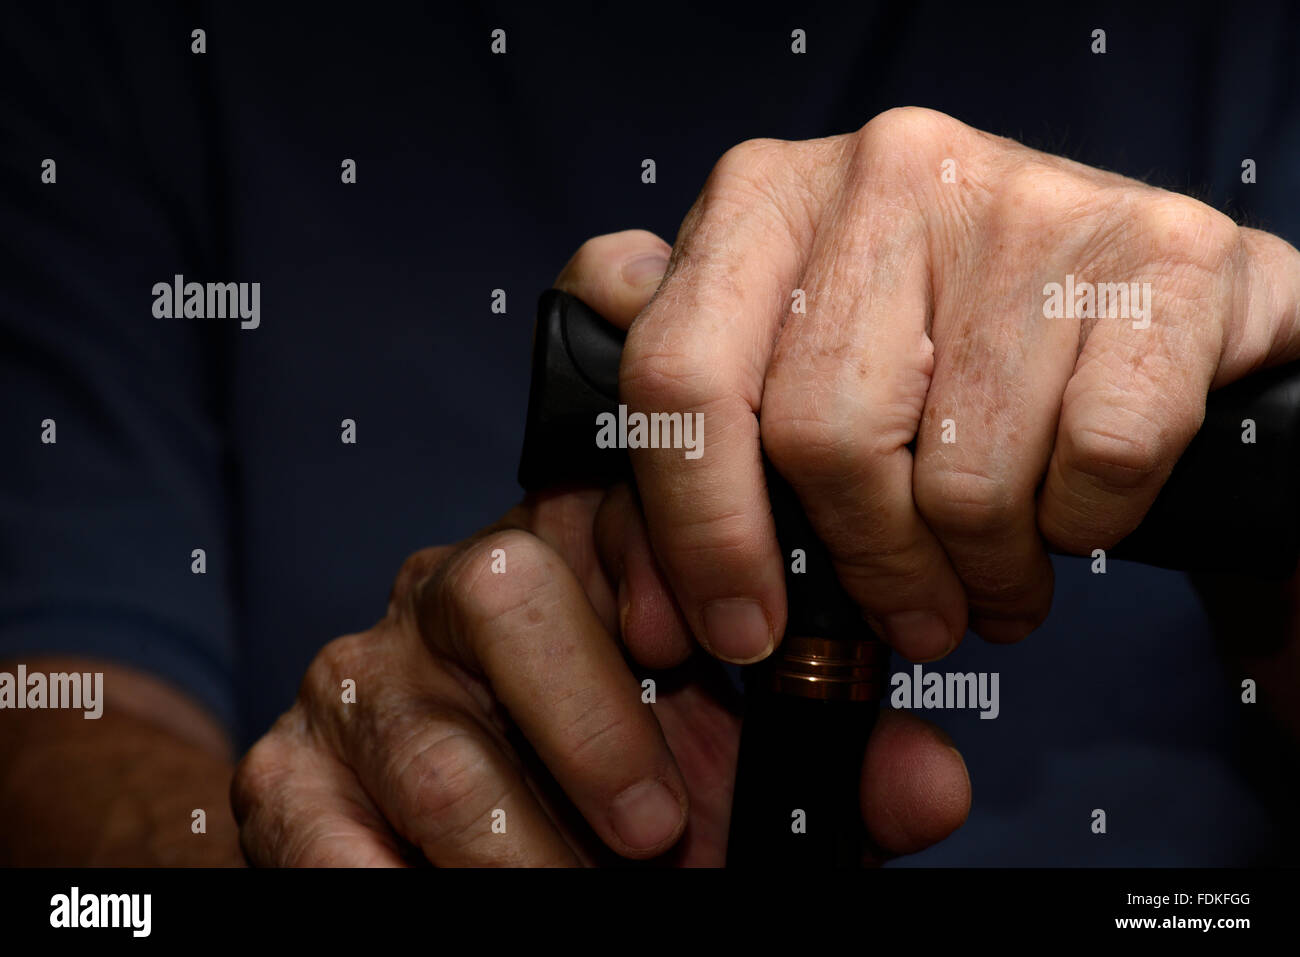 Hands of an elderly woman with chronic health and medical issues grasp a walking cane. - Stock Image